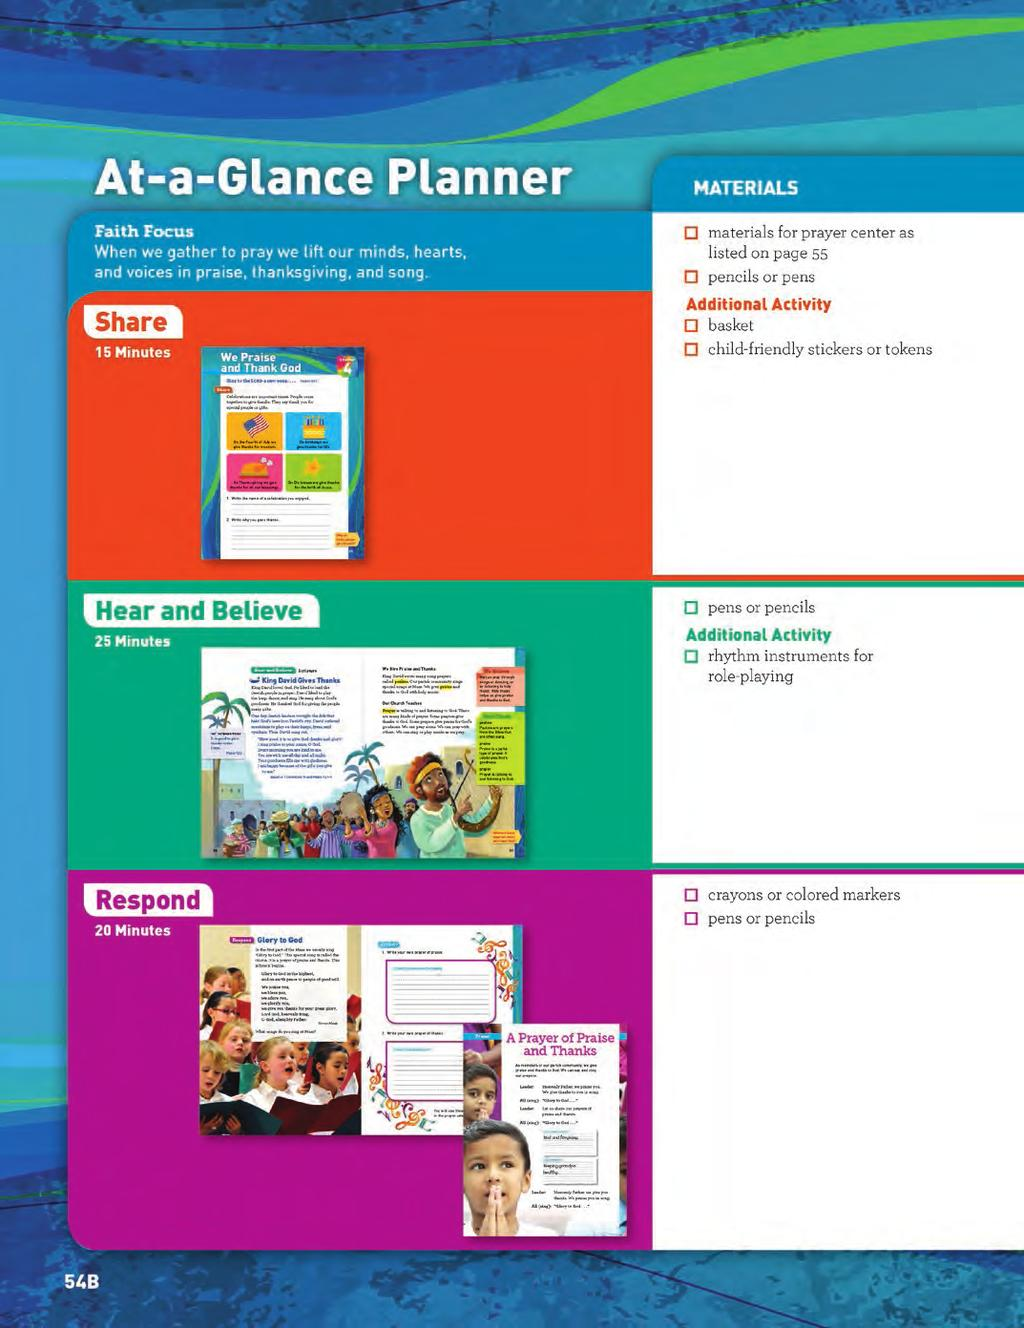 Grade 2 Catechist Guide At-a-Glance Planner AT-A-GLANCE PLANNER The At-a-Glance Planner presents an overview of the